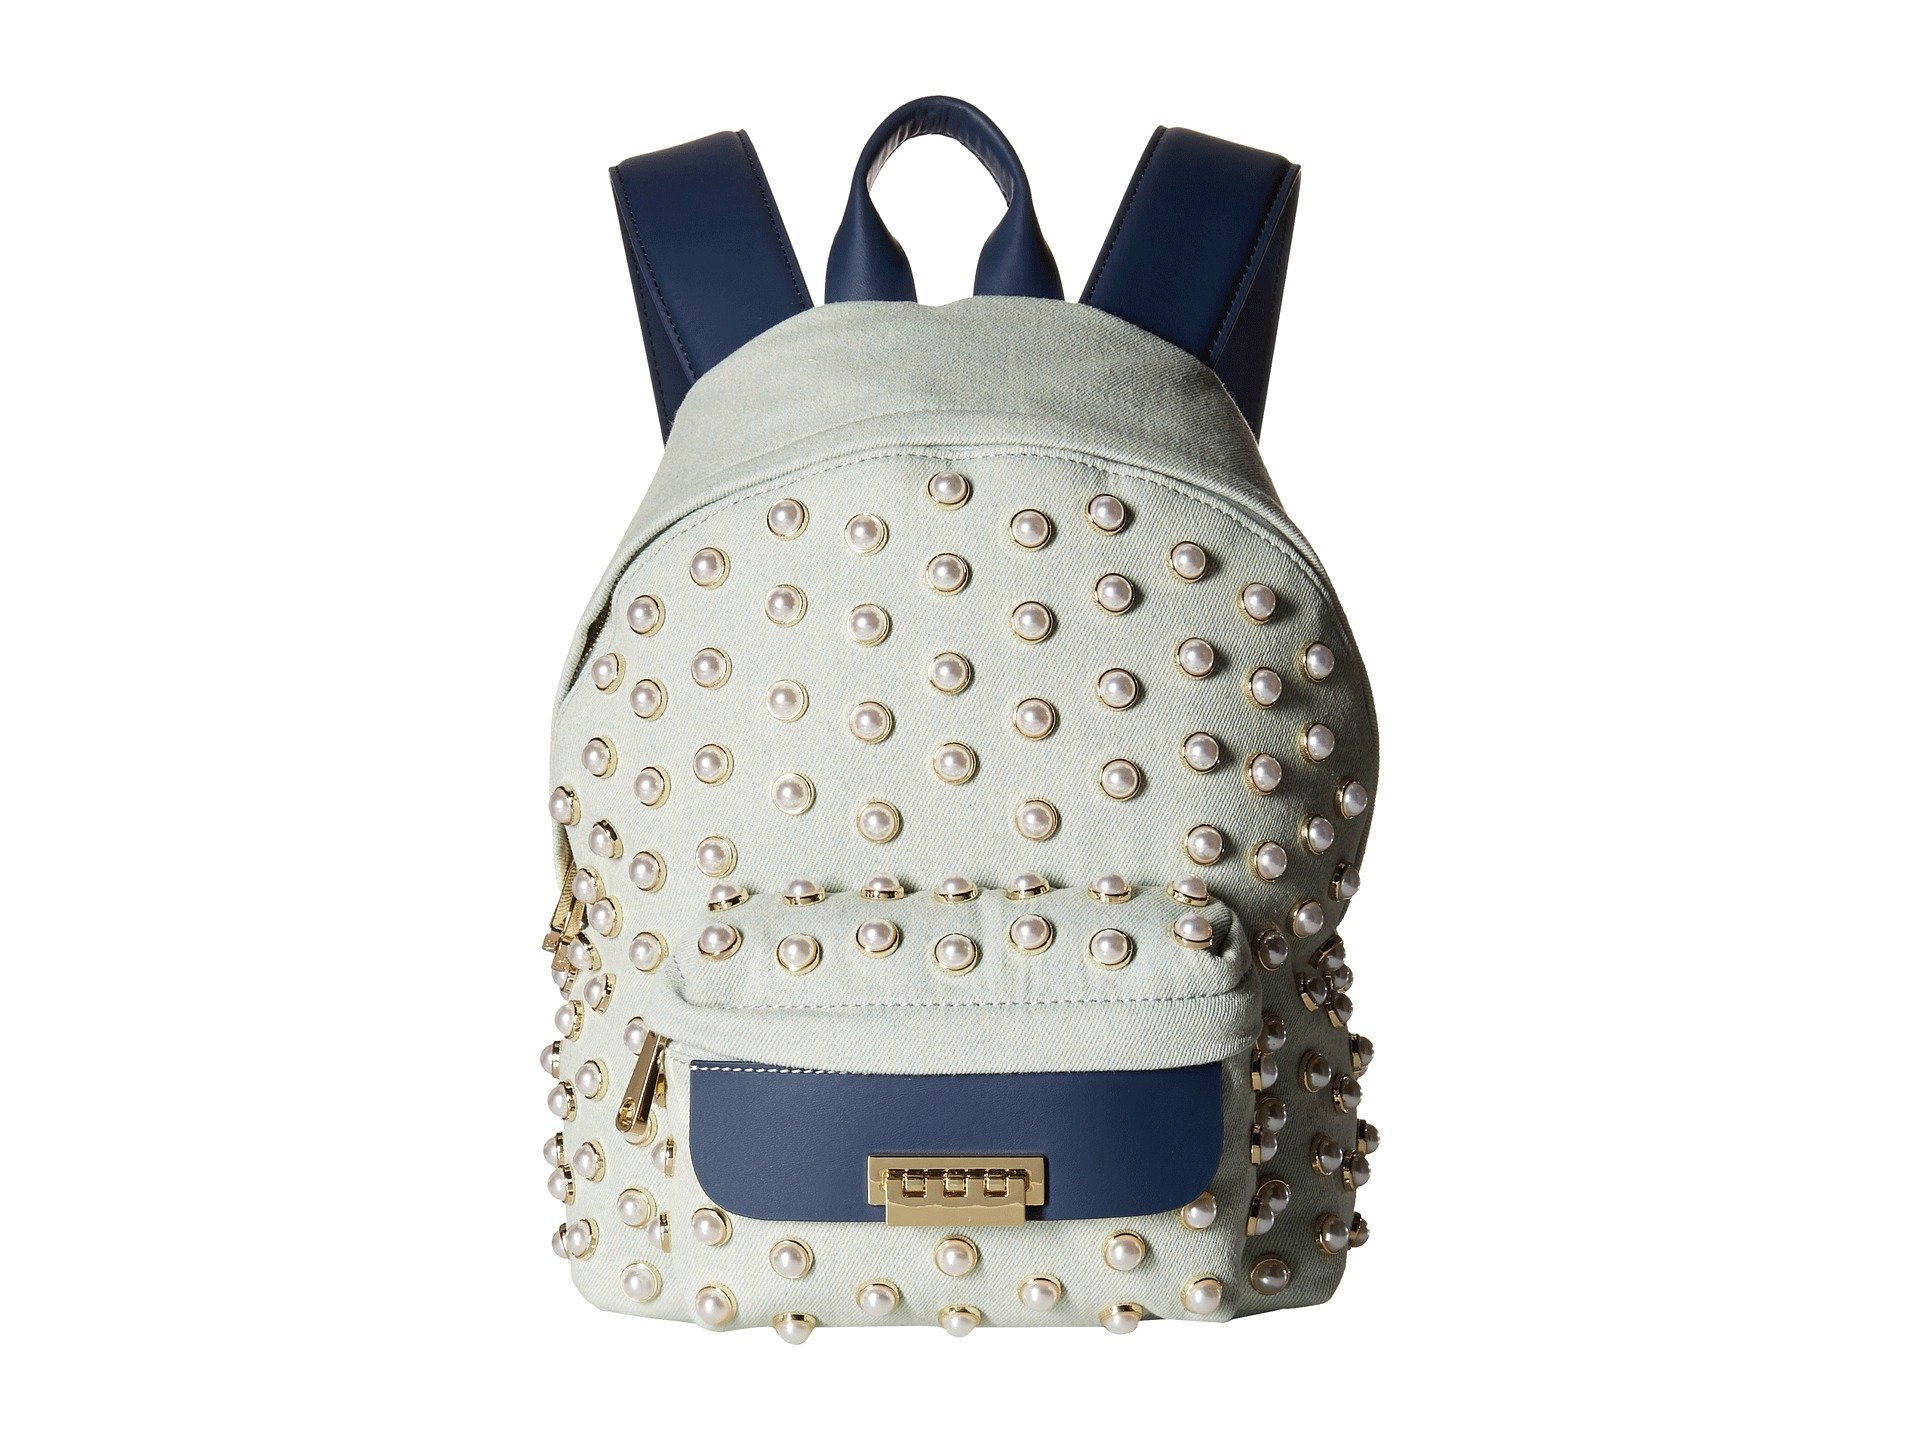 Mochila para Mujer ZAC Zac Posen Eartha Iconic Small Backpack Denim Pearl Lady  + ZAC Zac Posen en VeoyCompro.net